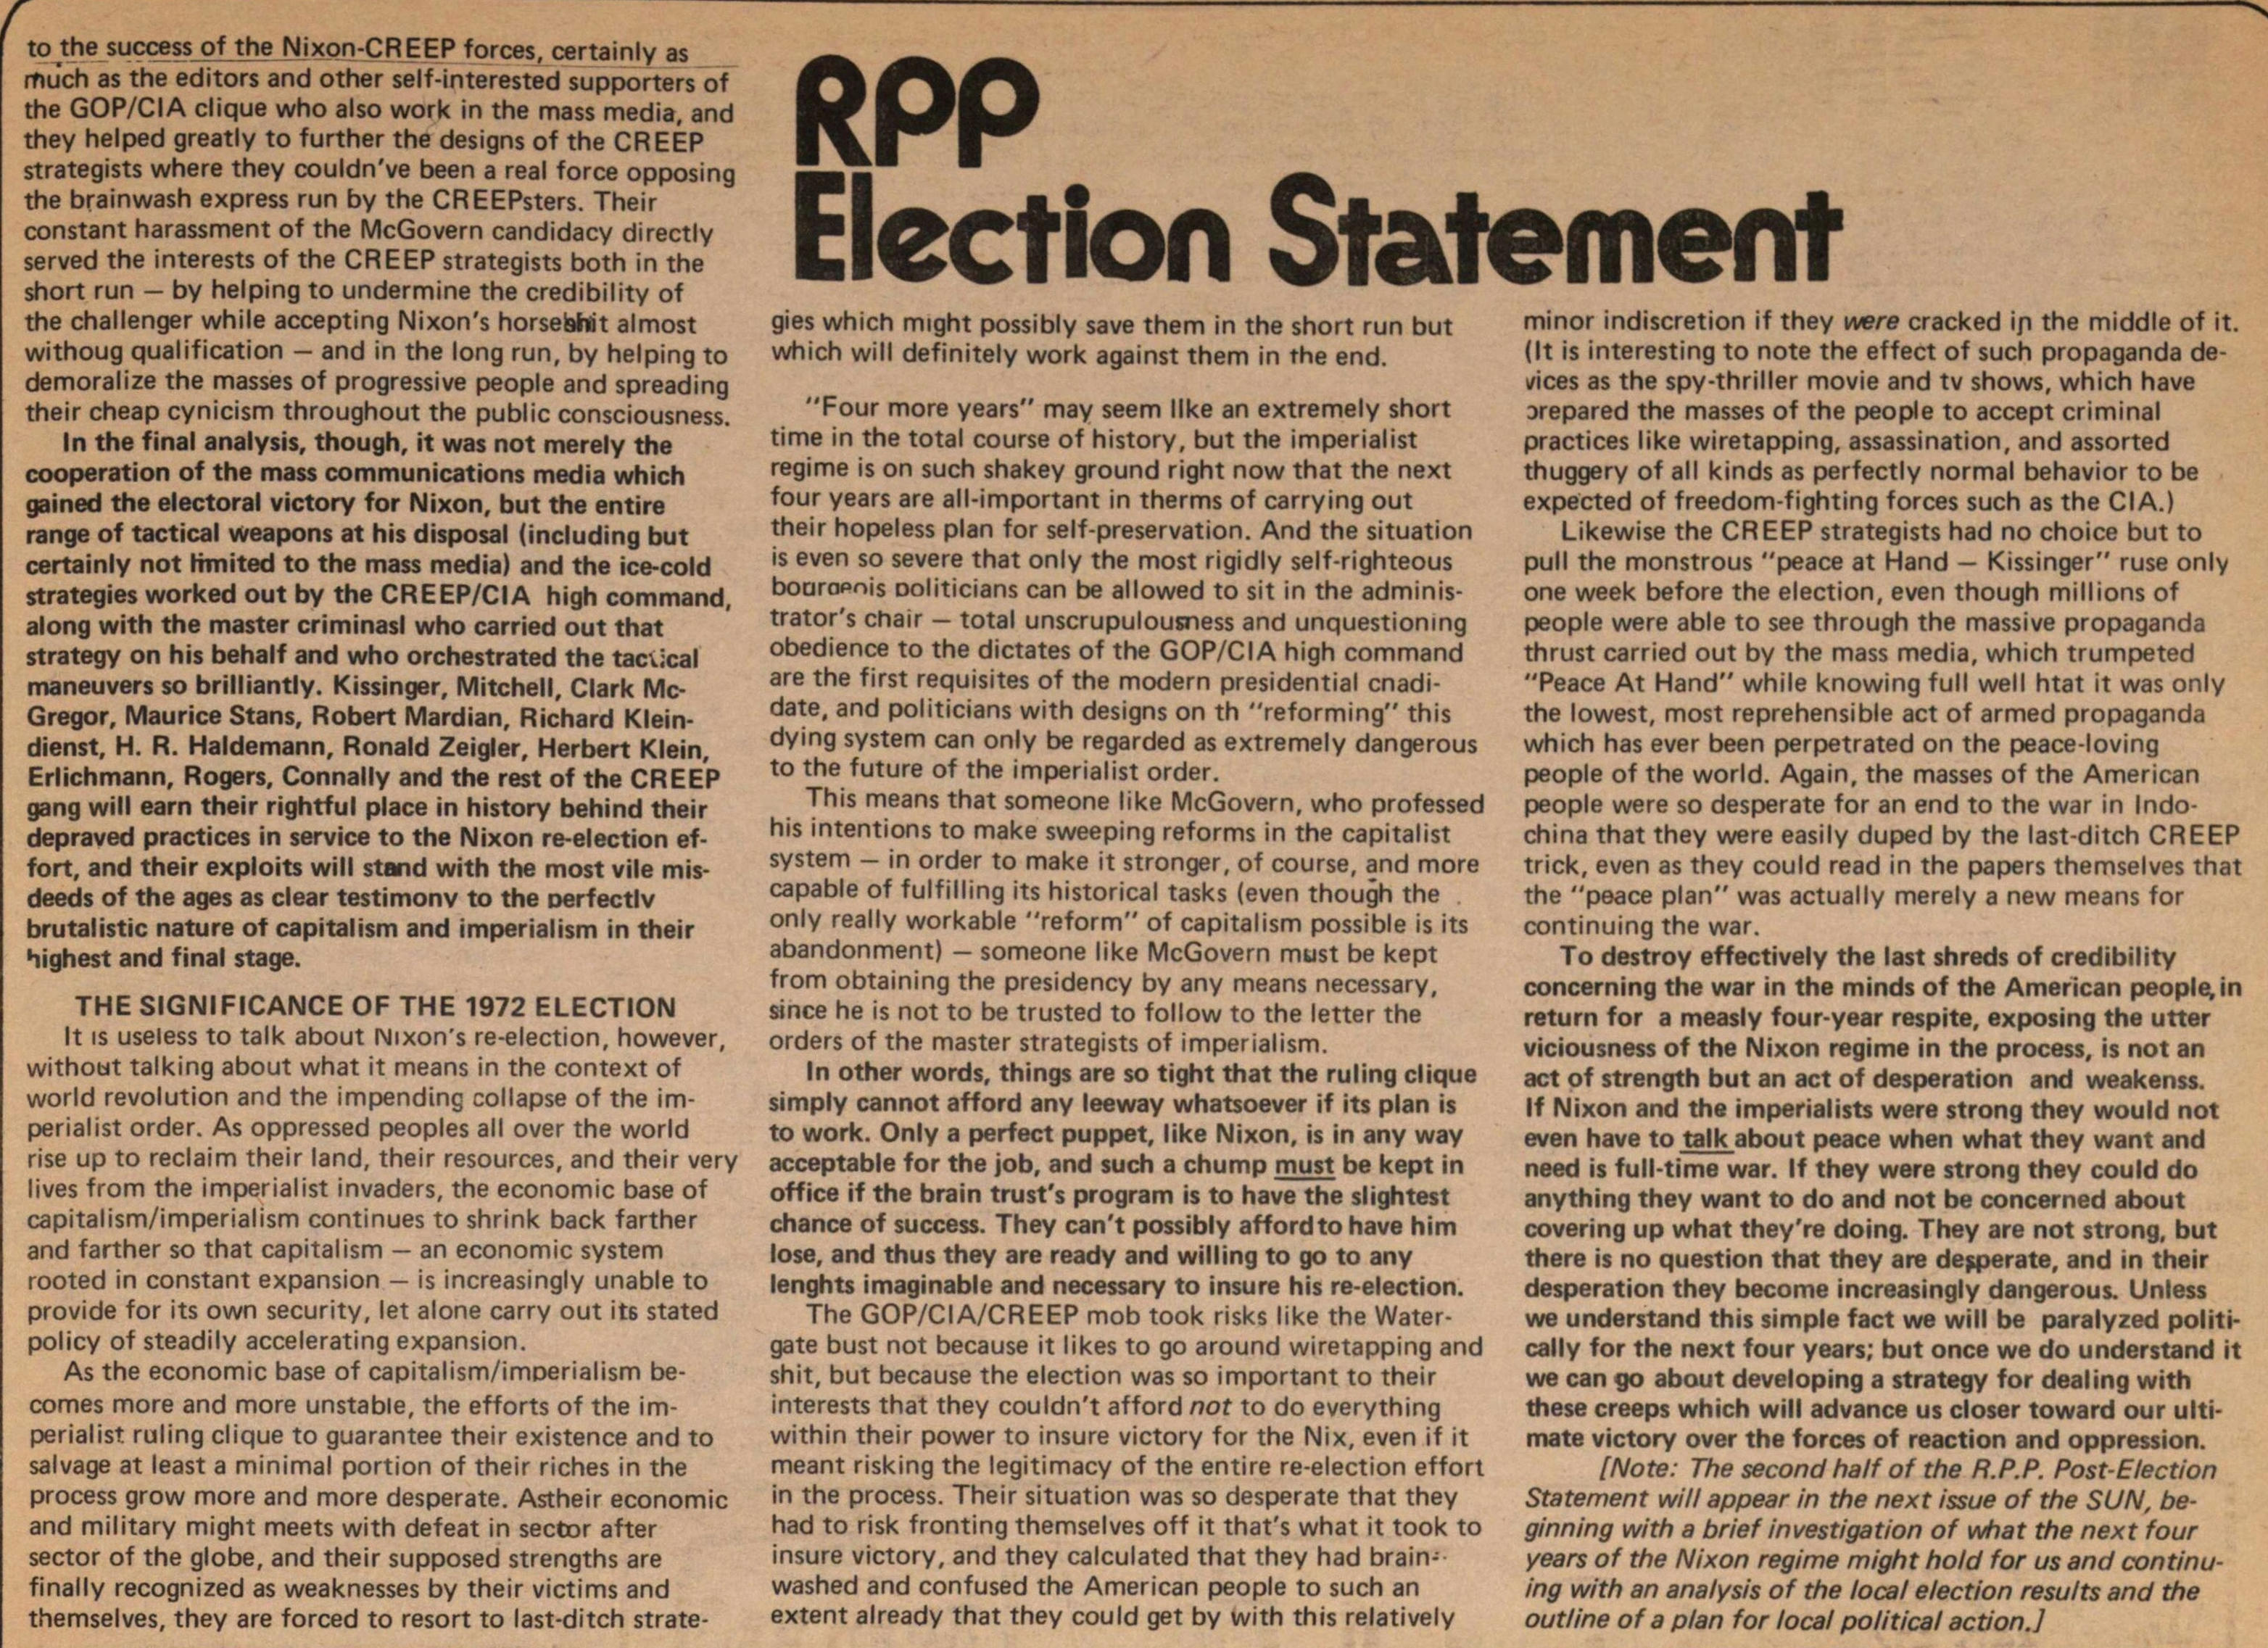 Rpp Election Statement image